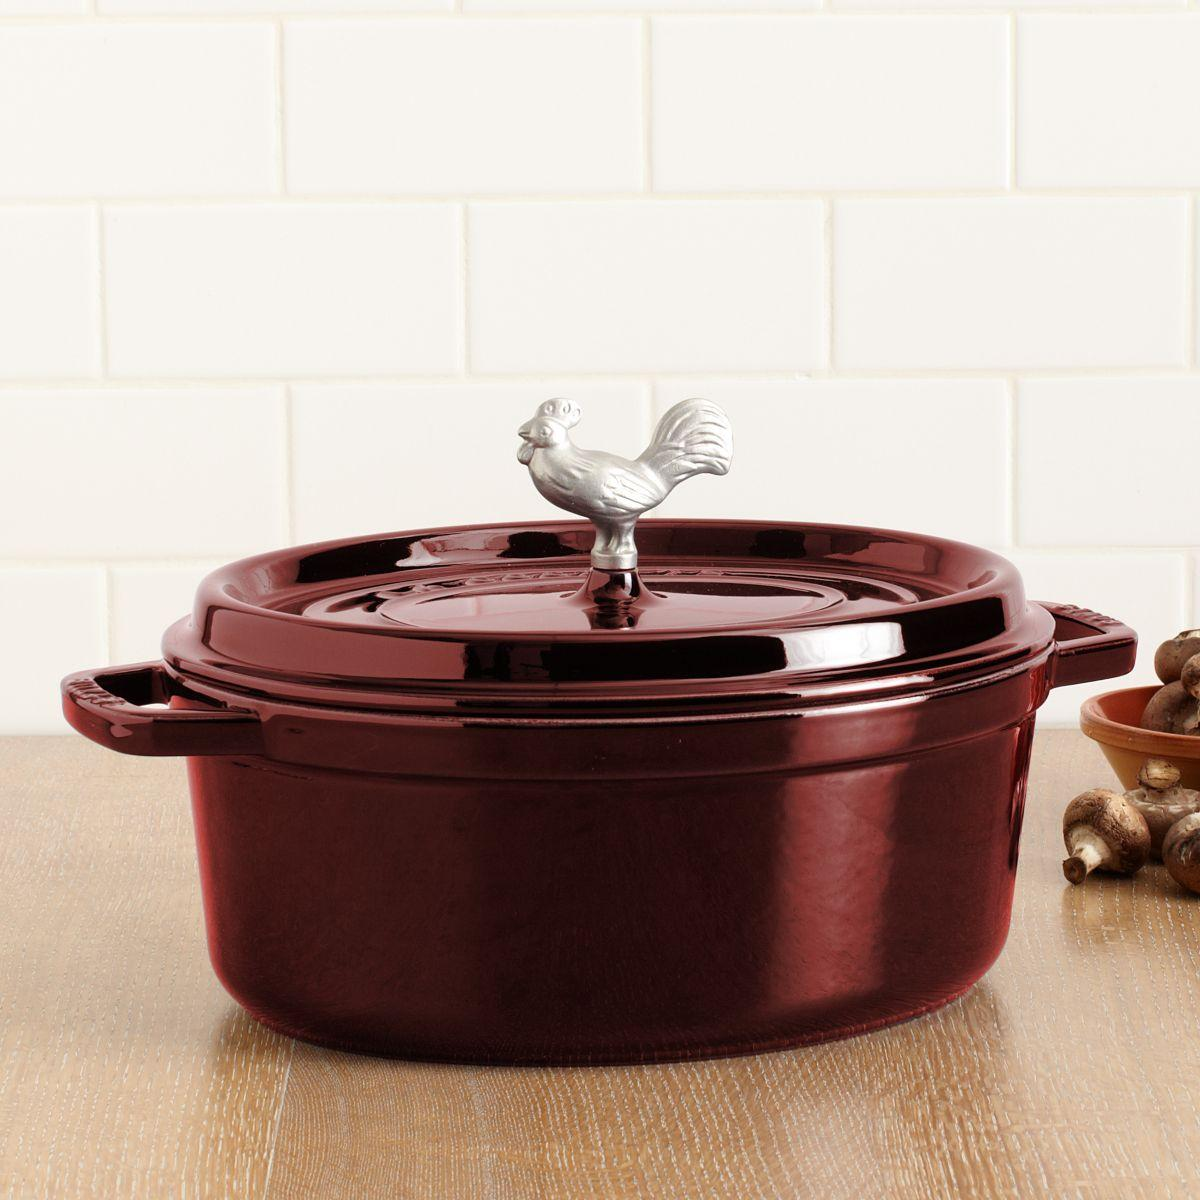 Extra 25% Off Stub Cookware Sale @ Bloomingdales